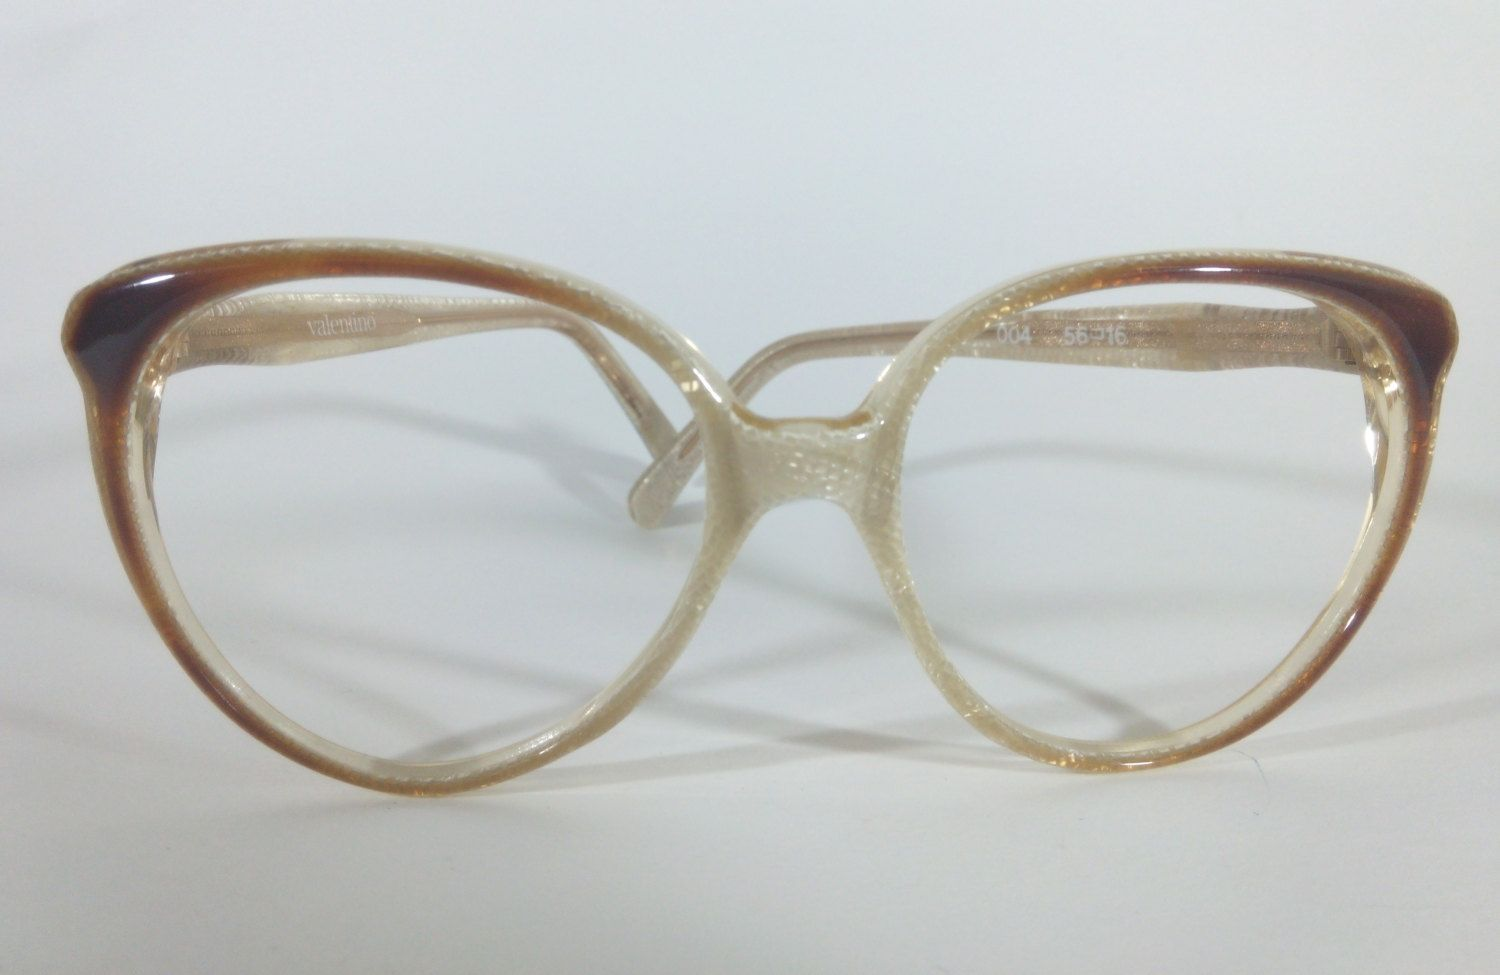 Vintage Eyeglasses, Valentino 004, Cat Eye Glasses, 70s, Womens ...